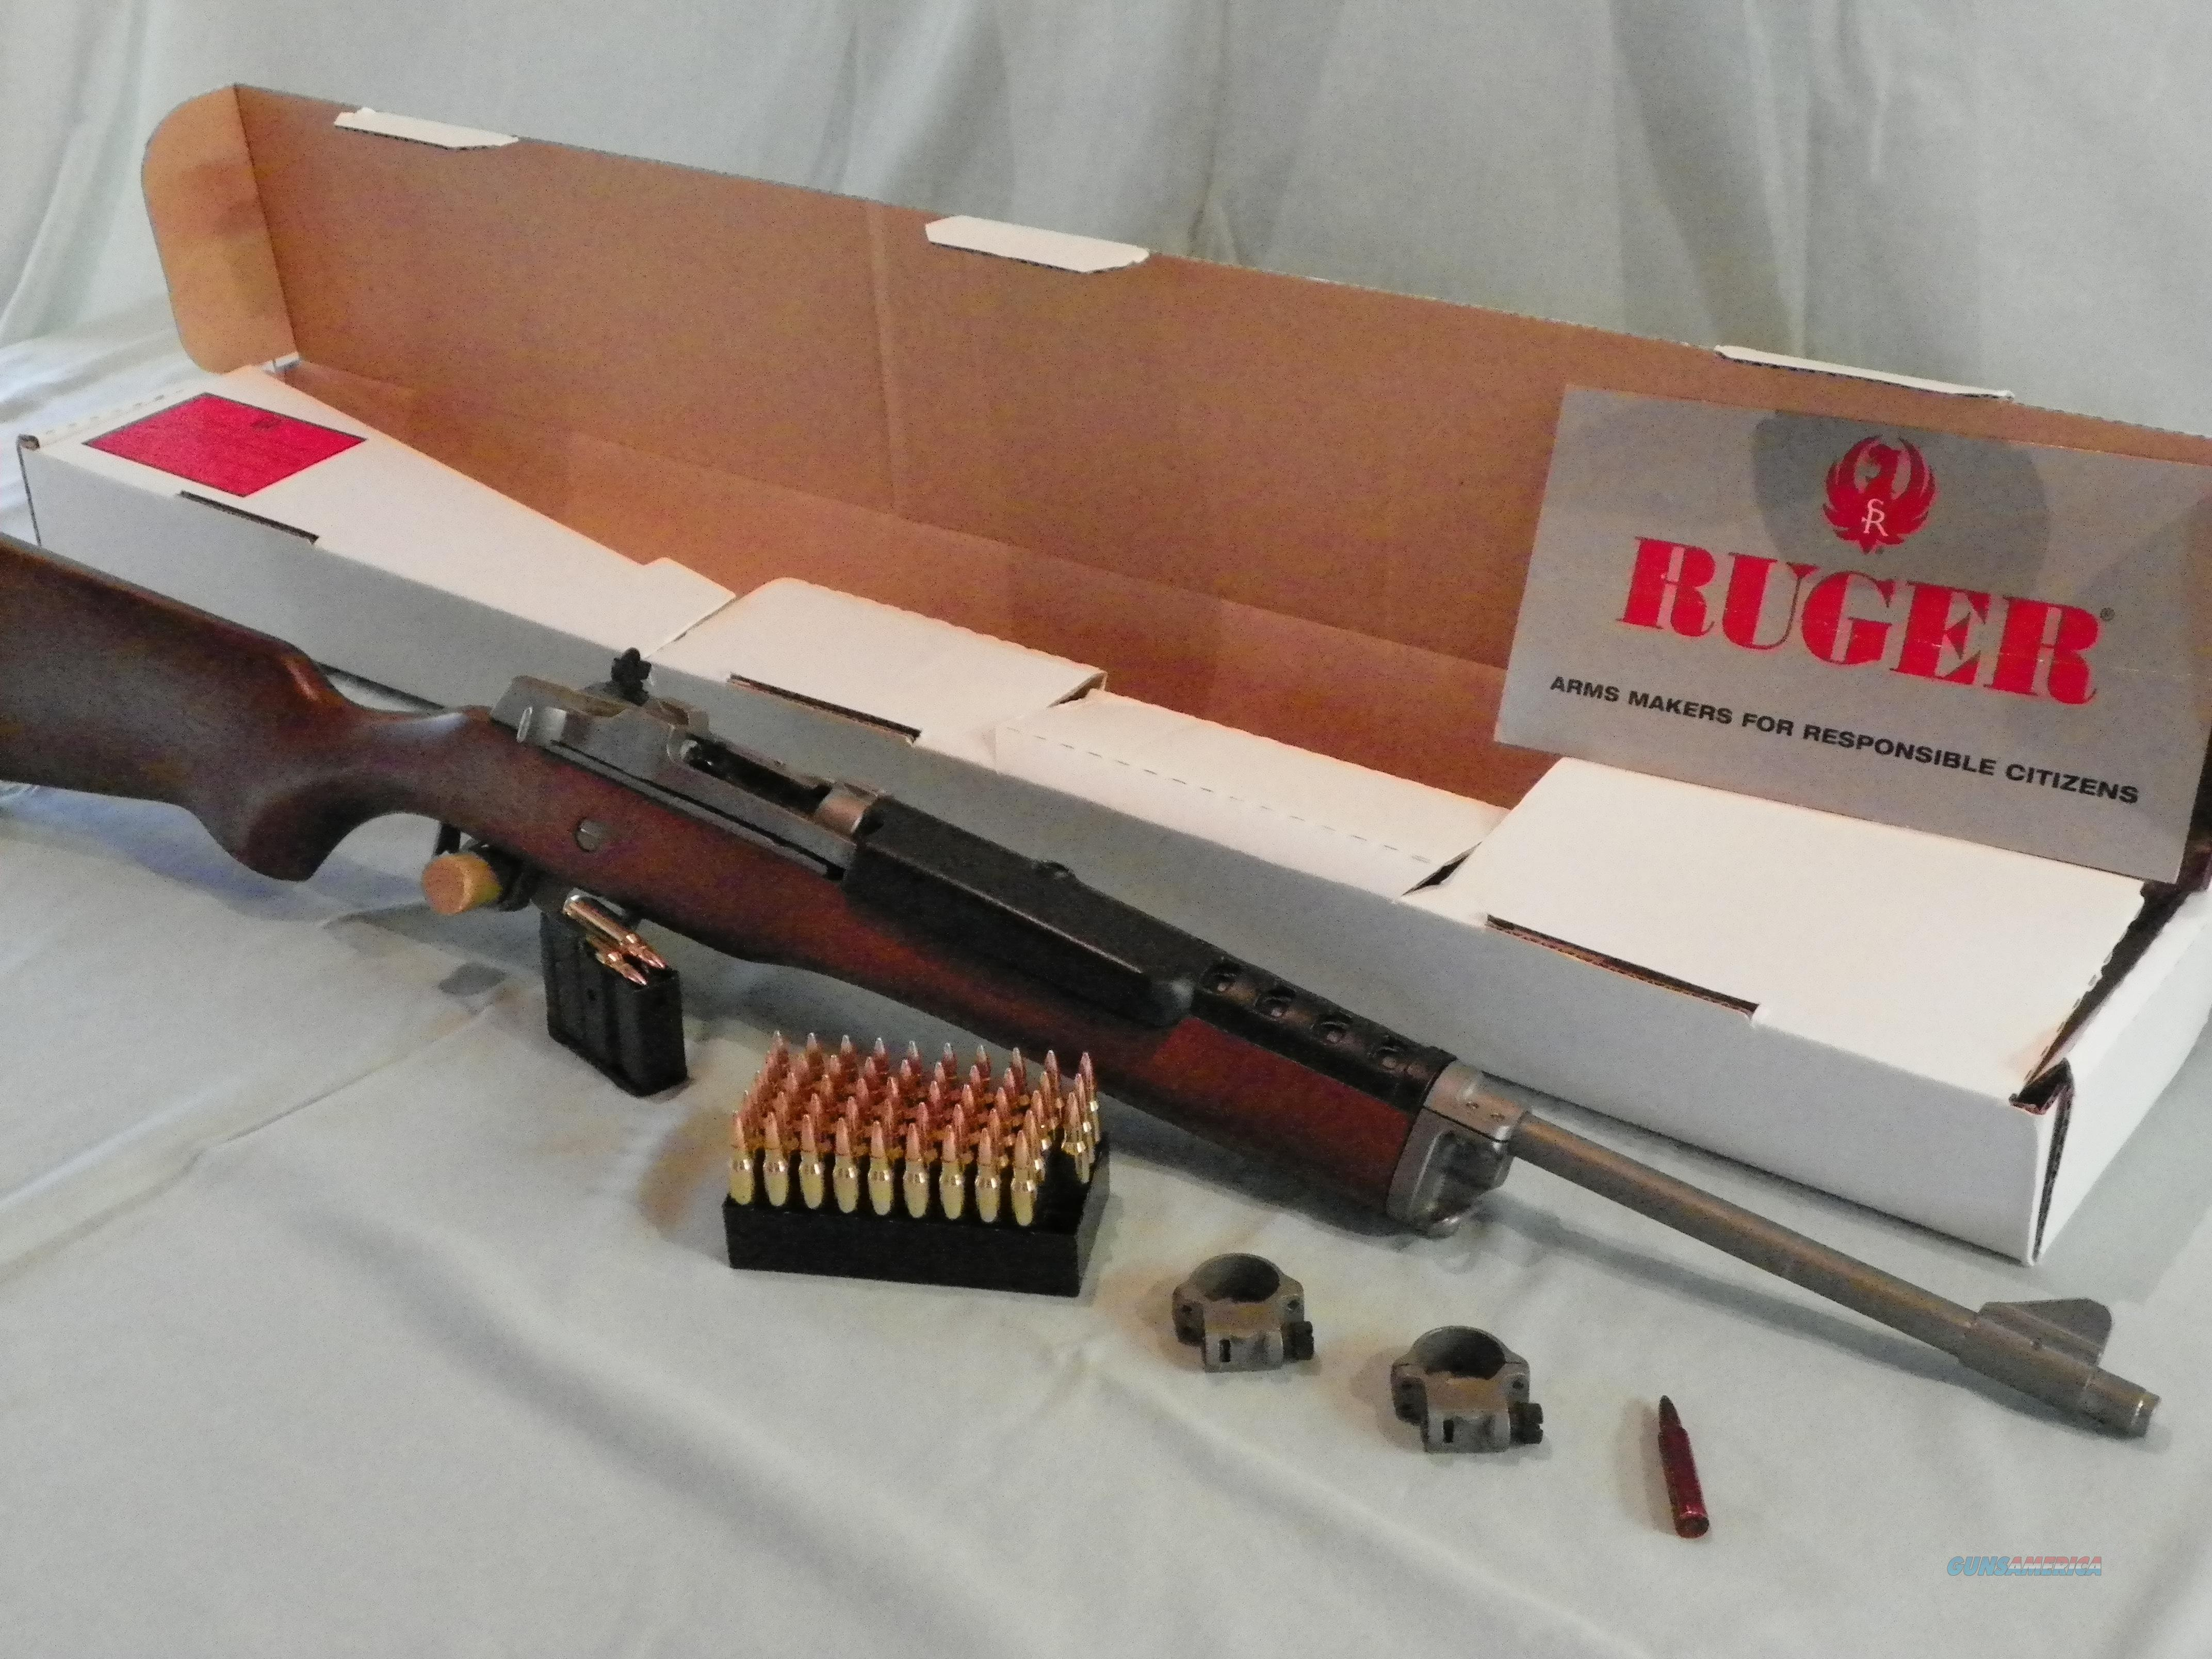 Stainless Ruger Mini 14  Guns > Rifles > Ruger Rifles > Mini-14 Type